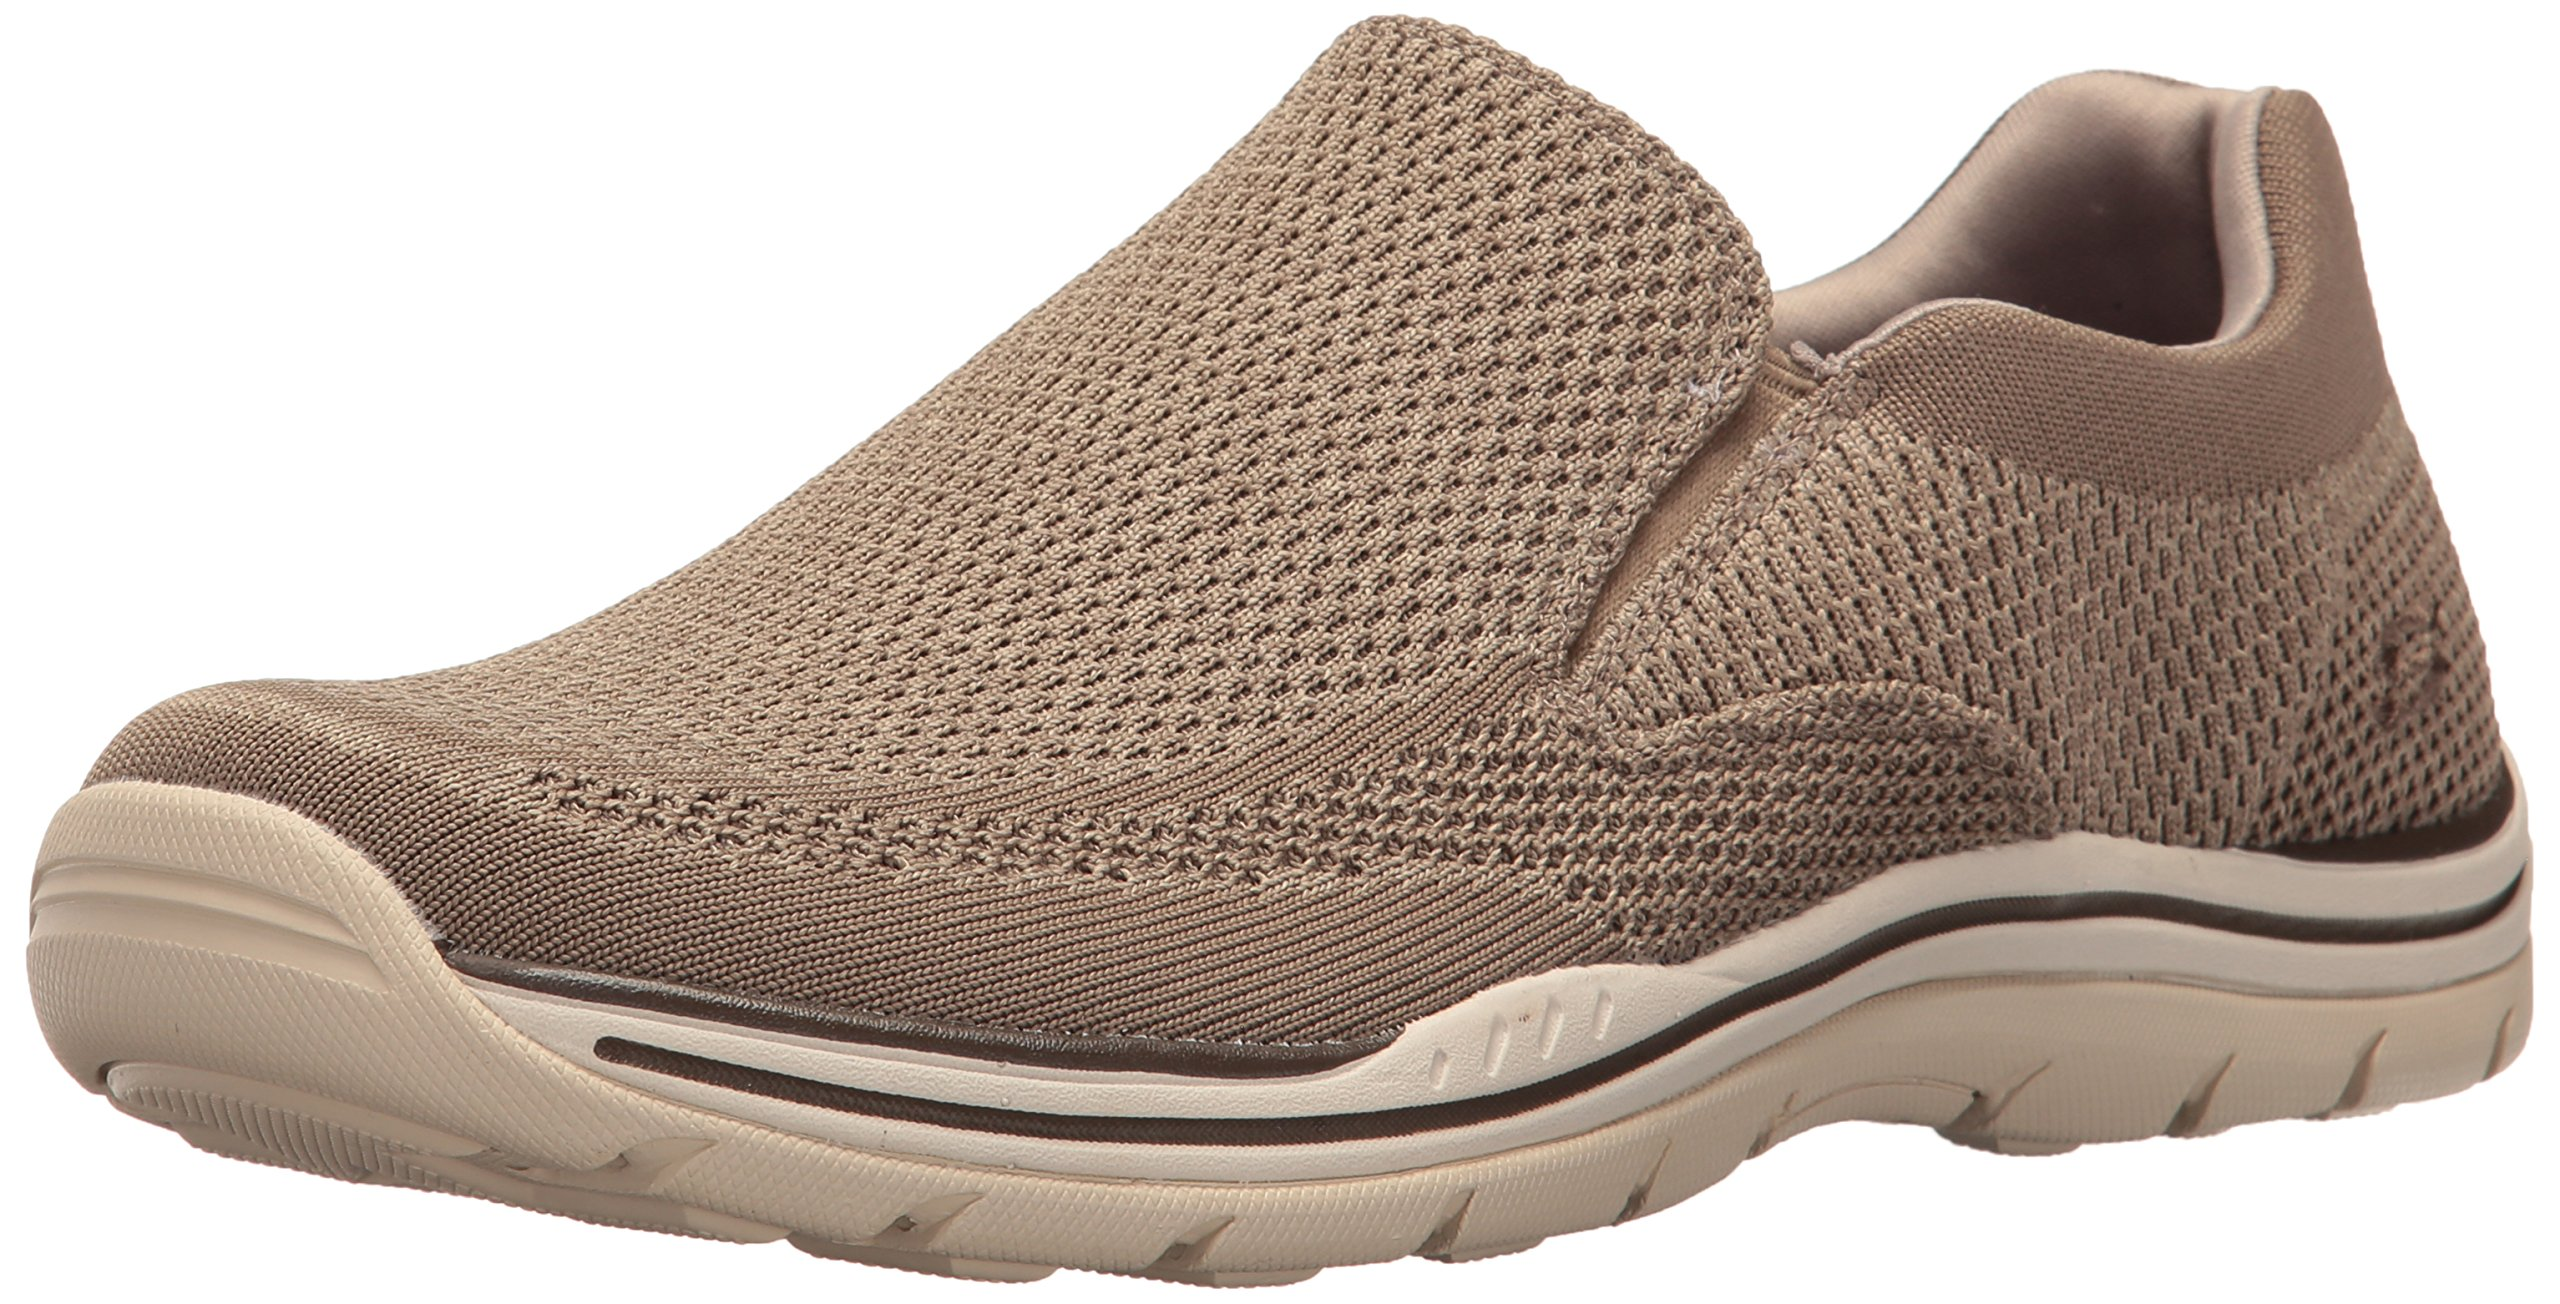 Skechers USA Men's Expected Gomel Slip-on Loafer,Taupe,11 M US by Skechers